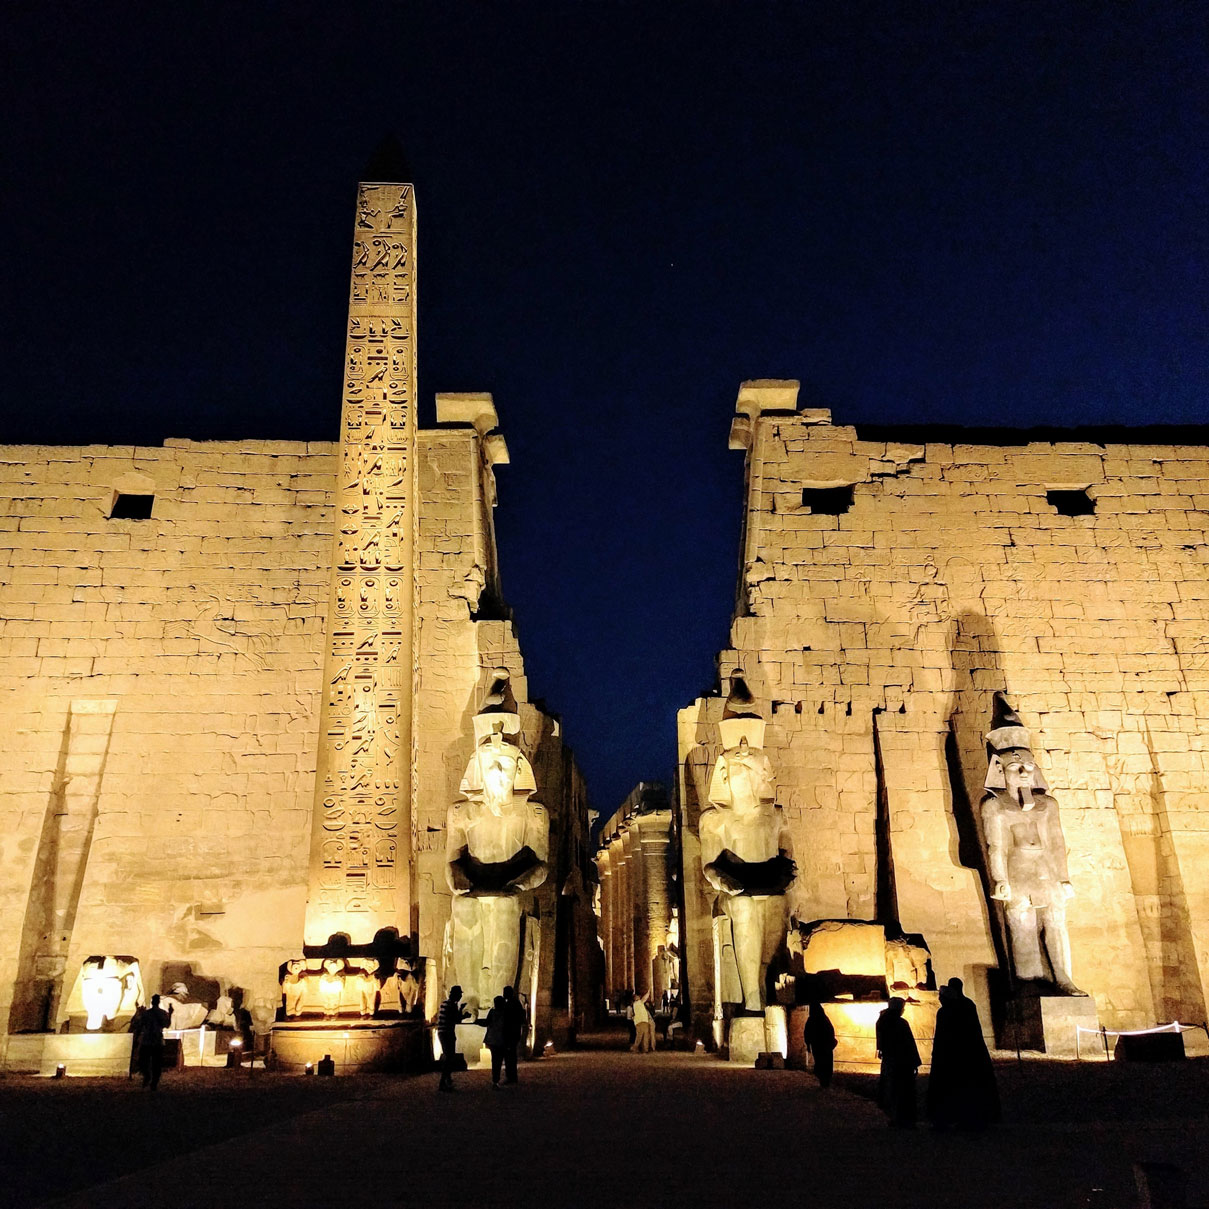 The entrance to Egypt's Luxor Temple at night